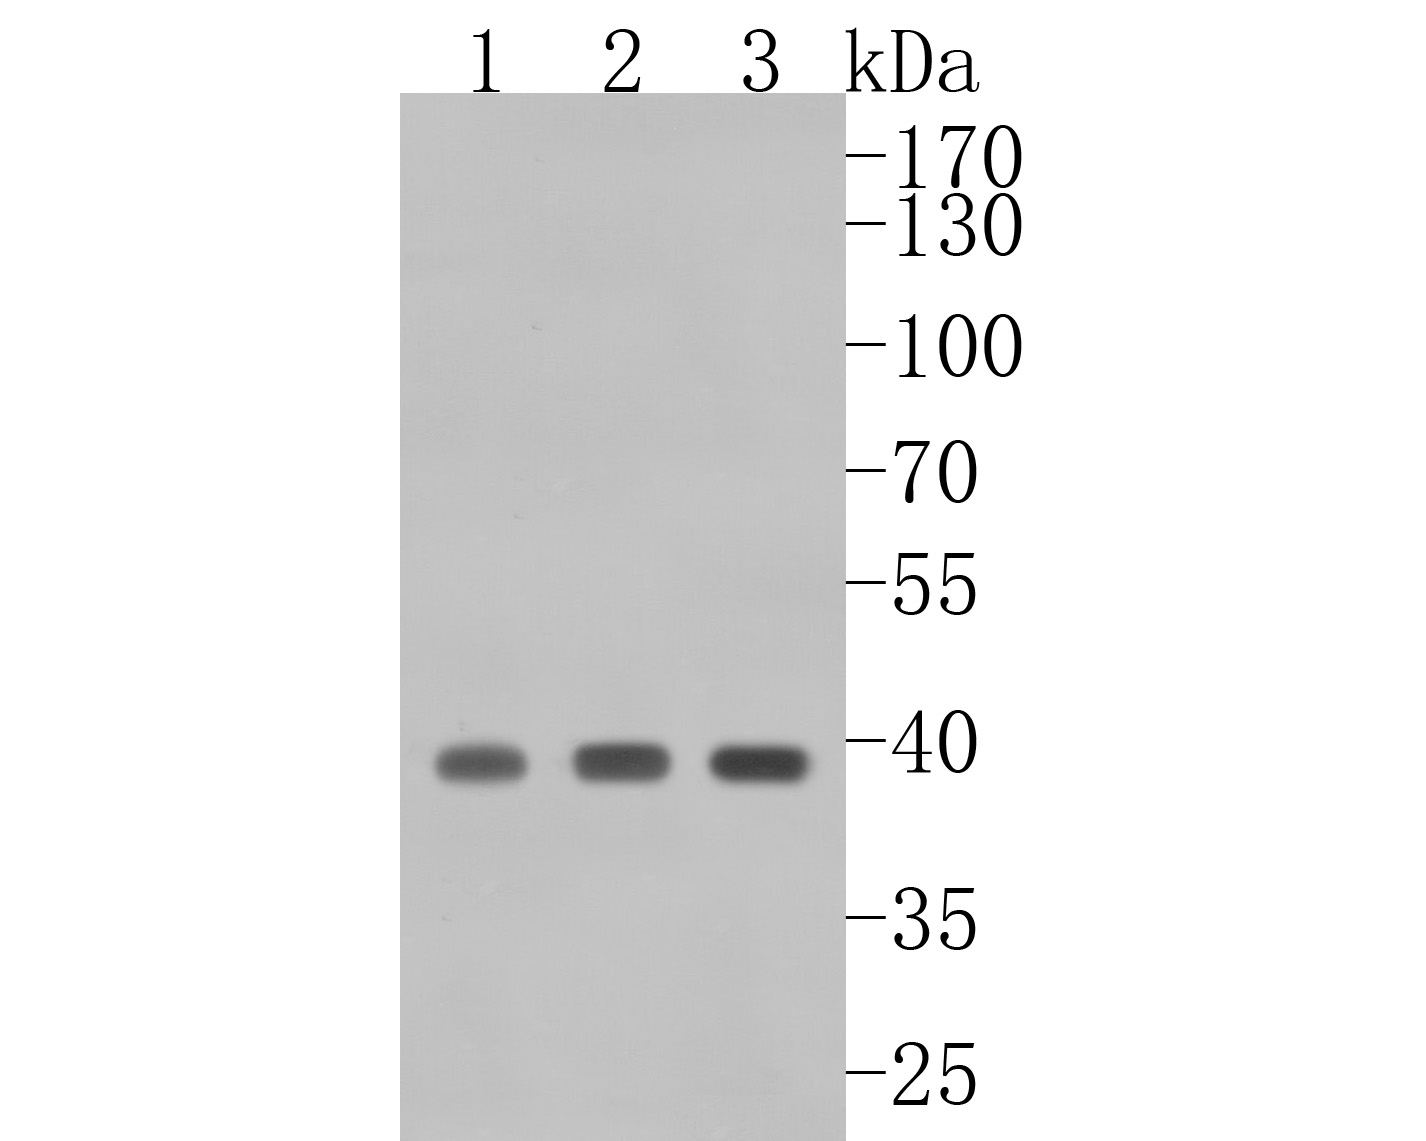 Western blot analysis of Cdk9 on different lysates. Proteins were transferred to a PVDF membrane and blocked with 5% BSA in PBS for 1 hour at room temperature. The primary antibody (ET1612-78, 1/500) was used in 5% BSA at room temperature for 2 hours. Goat Anti-Rabbit IgG - HRP Secondary Antibody (HA1001) at 1:5,000 dilution was used for 1 hour at room temperature.<br /> Positive control: <br /> Lane 1: Hela cell lysate<br /> Lane 2: Jurkat cell lysate<br /> Lane 2: A431 cell lysate